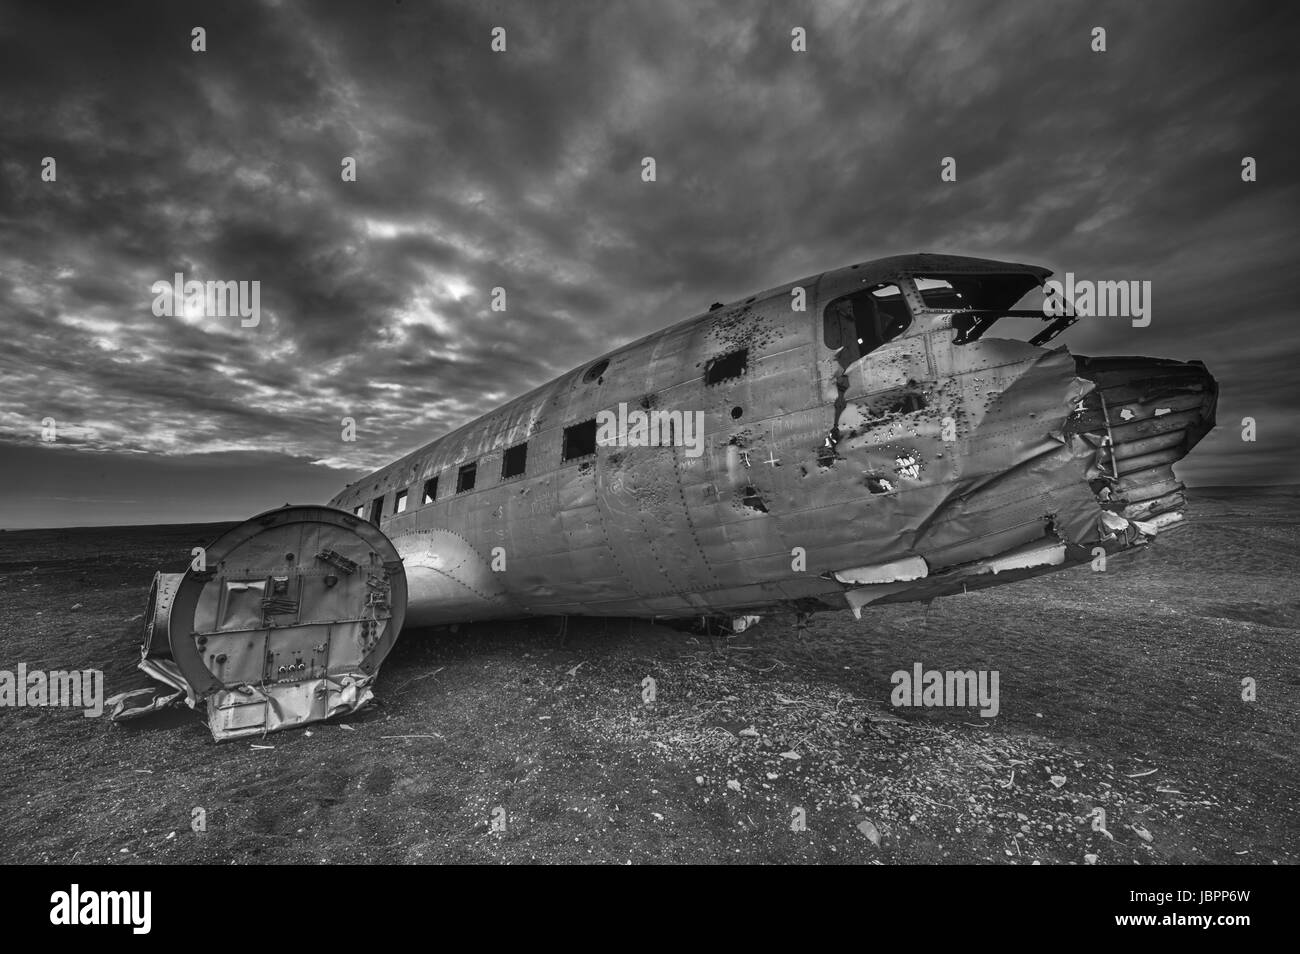 Wreck of a US military plane crashed in the middle of the nowhere. The plane ran out of fuel and crashed in a desert - Stock Image